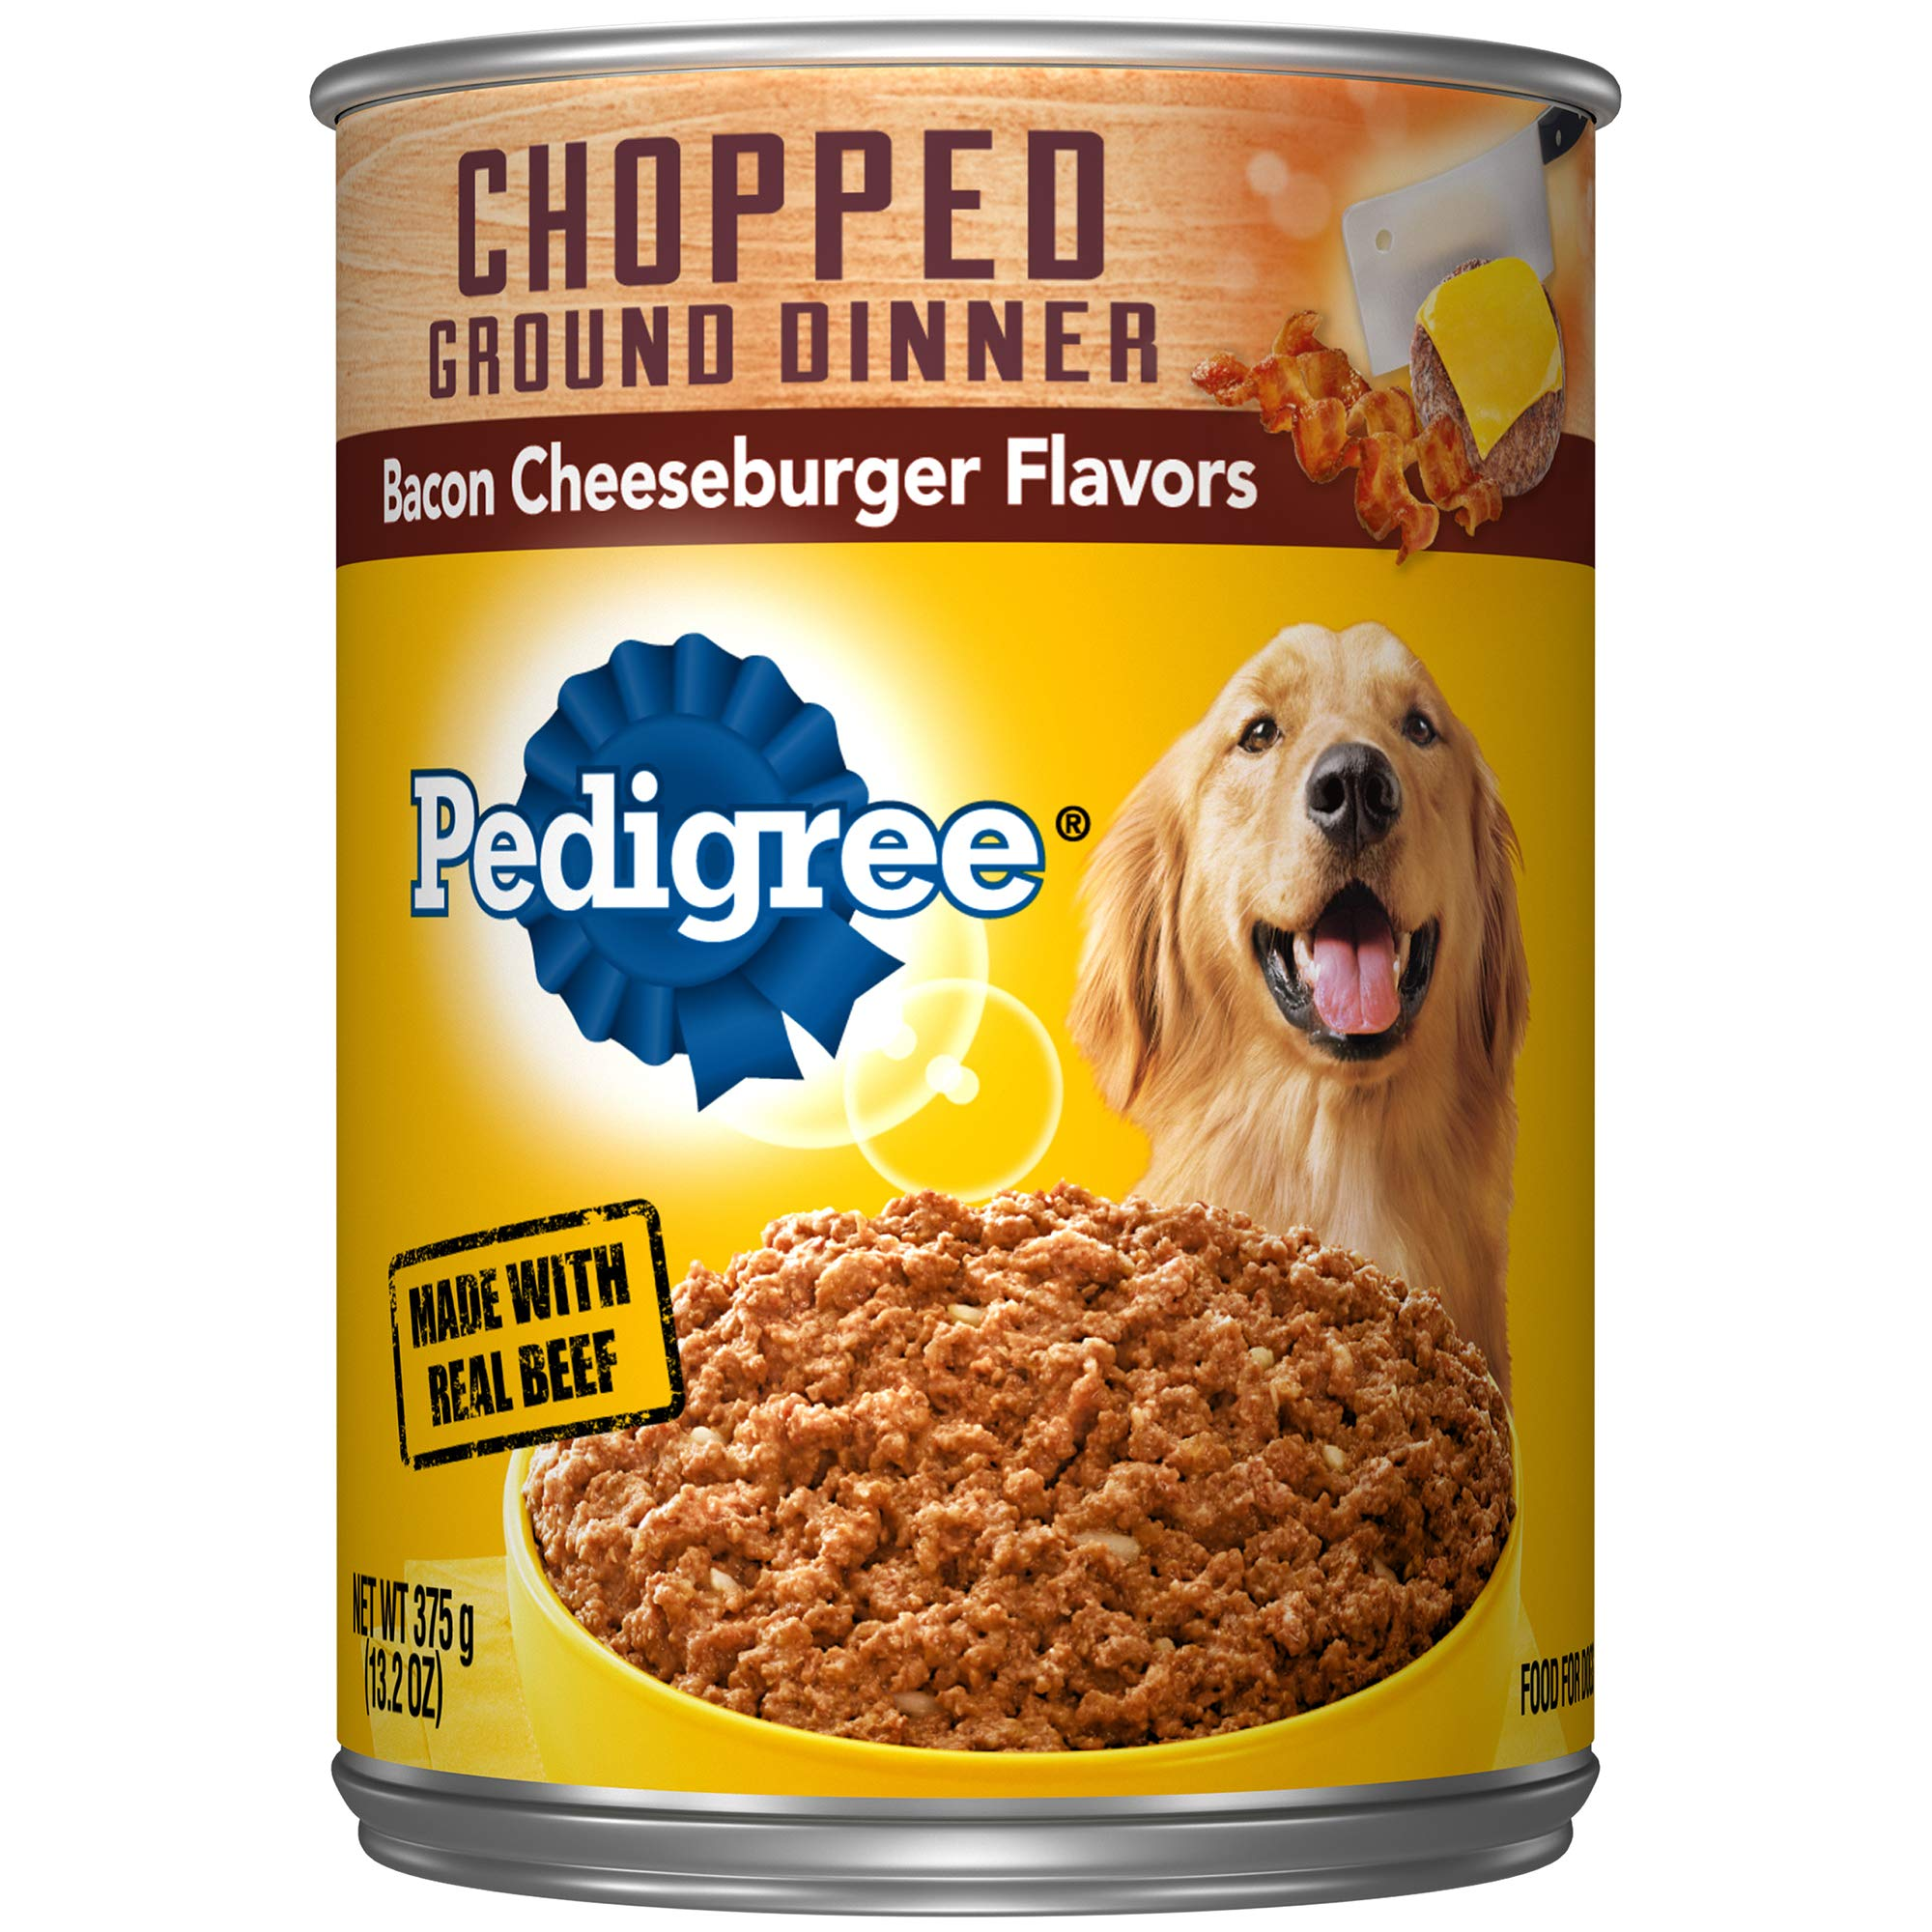 Pedigree Chopped Ground Dinner Bacon Cheeseburger Flavors Adult Canned Wet Dog Food, (12) 13.2 Oz. Cans by Pedigree